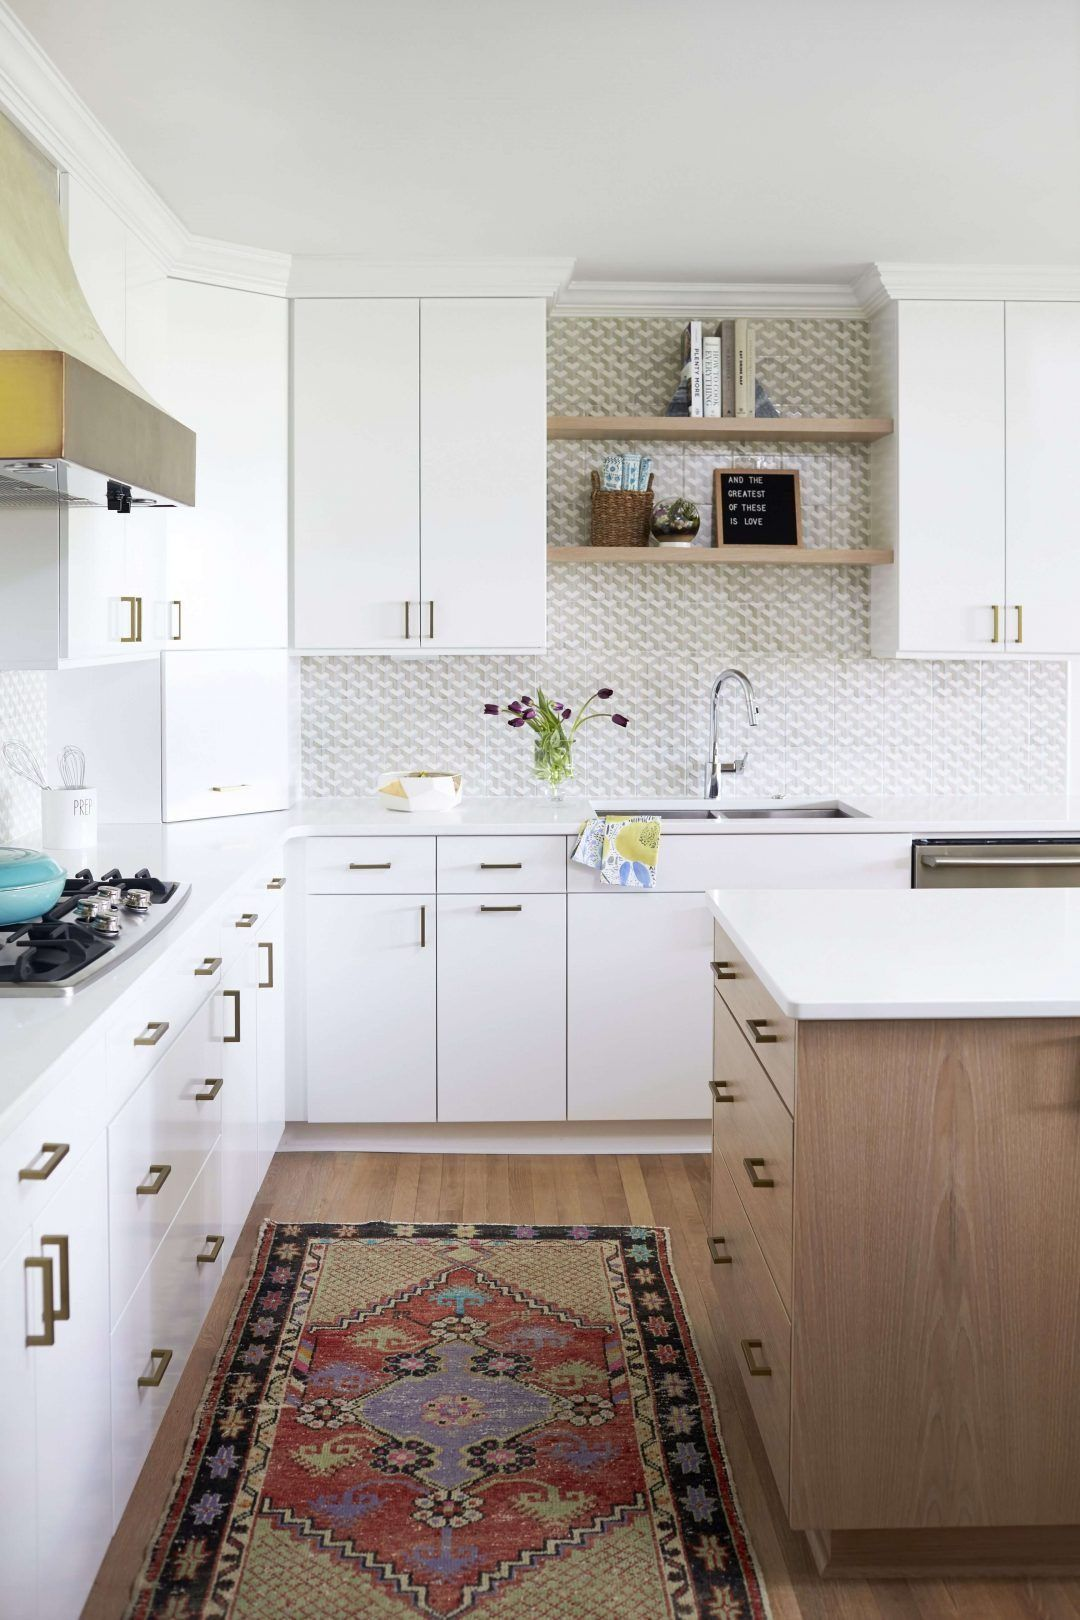 25 Mid Century Modern Kitchen Ideas To Beautify Your Cooking Area - 1041024007Cd88F7303Cf8969Eaef808